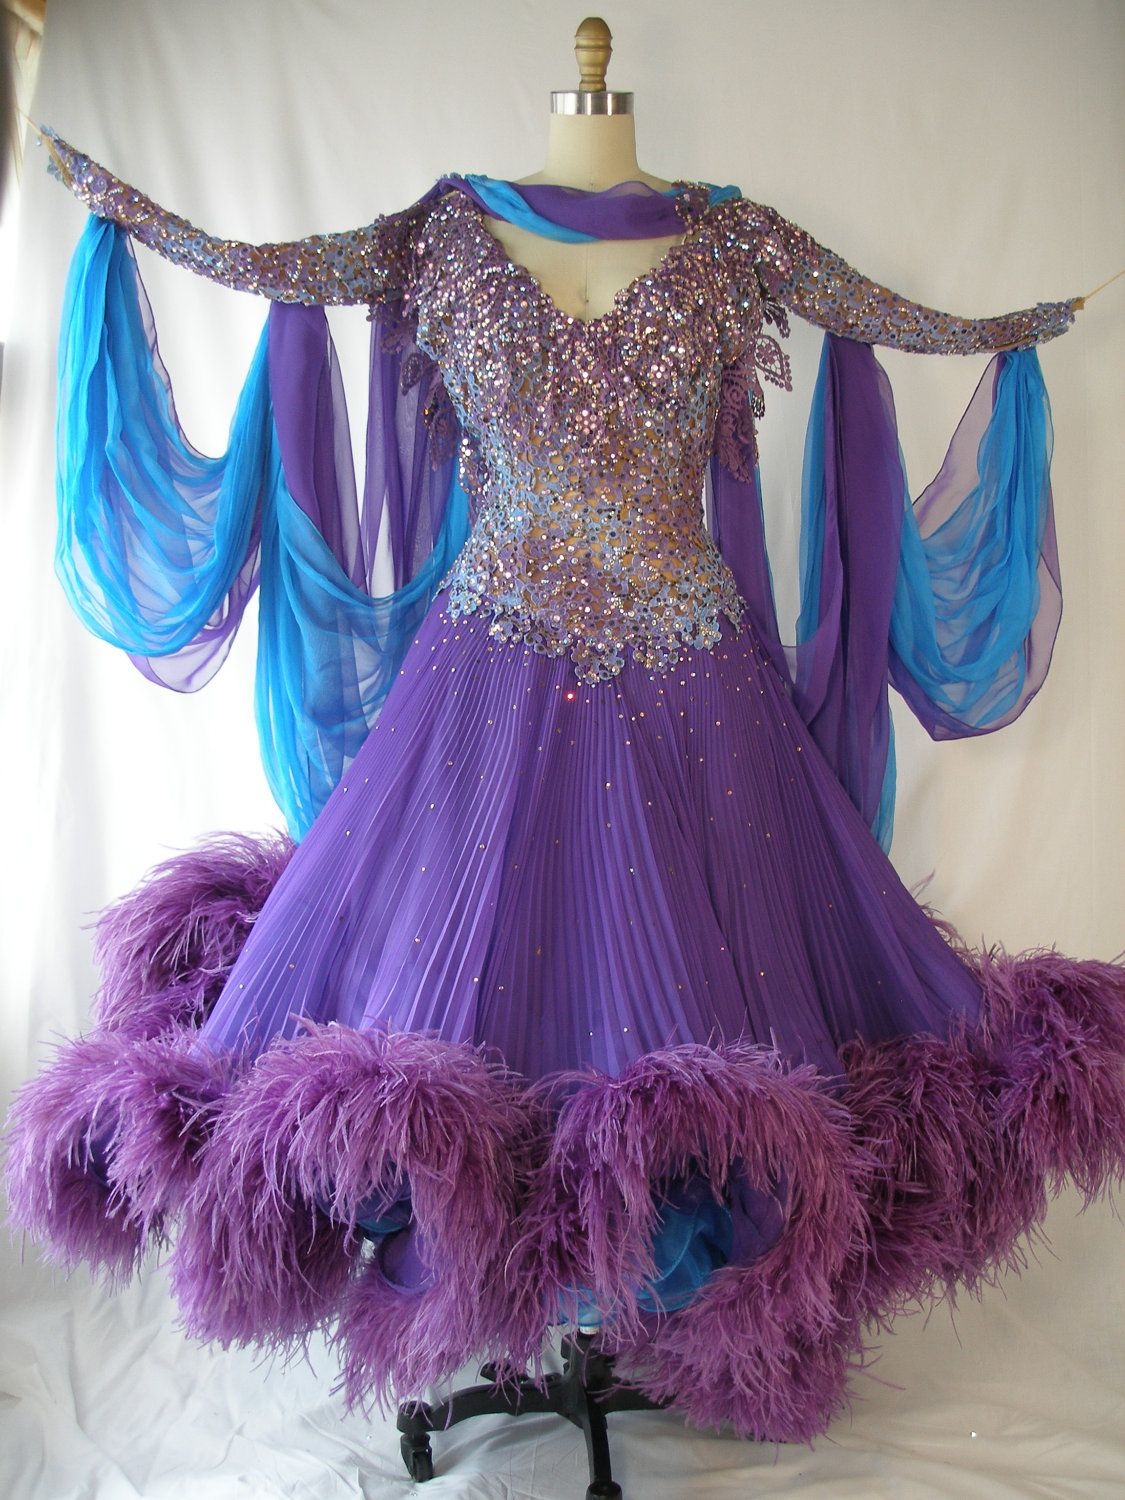 5f2b27549 1980s Ballroom Dancing Dress Purple. I want this one!   DaNcInG With ...